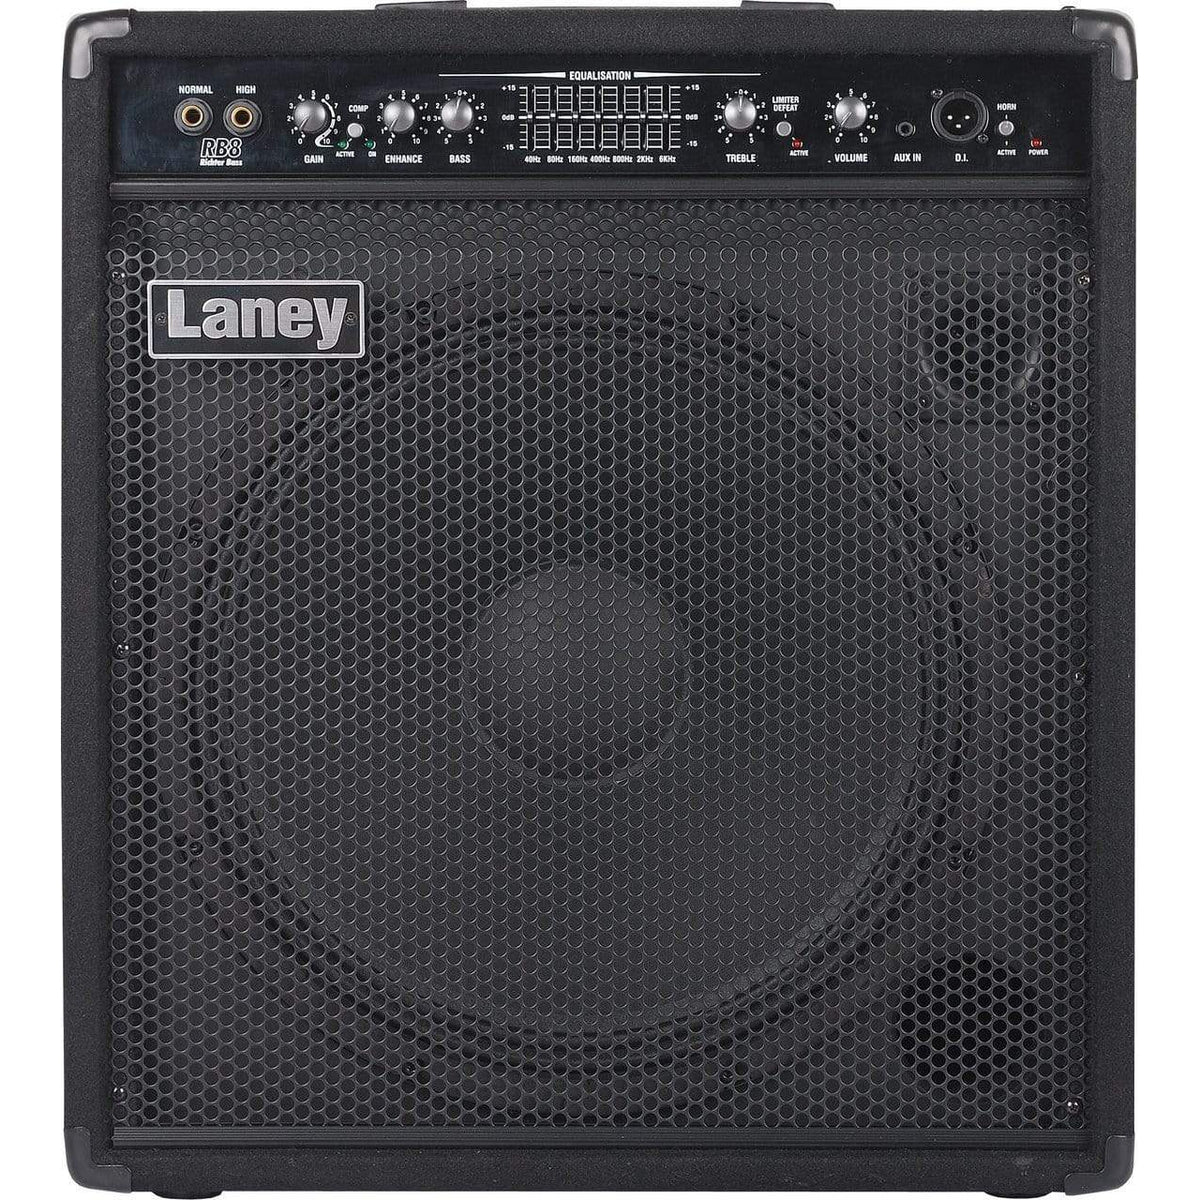 Laney Bass Amplifier Laney RB8 Richter Bass Amplifier